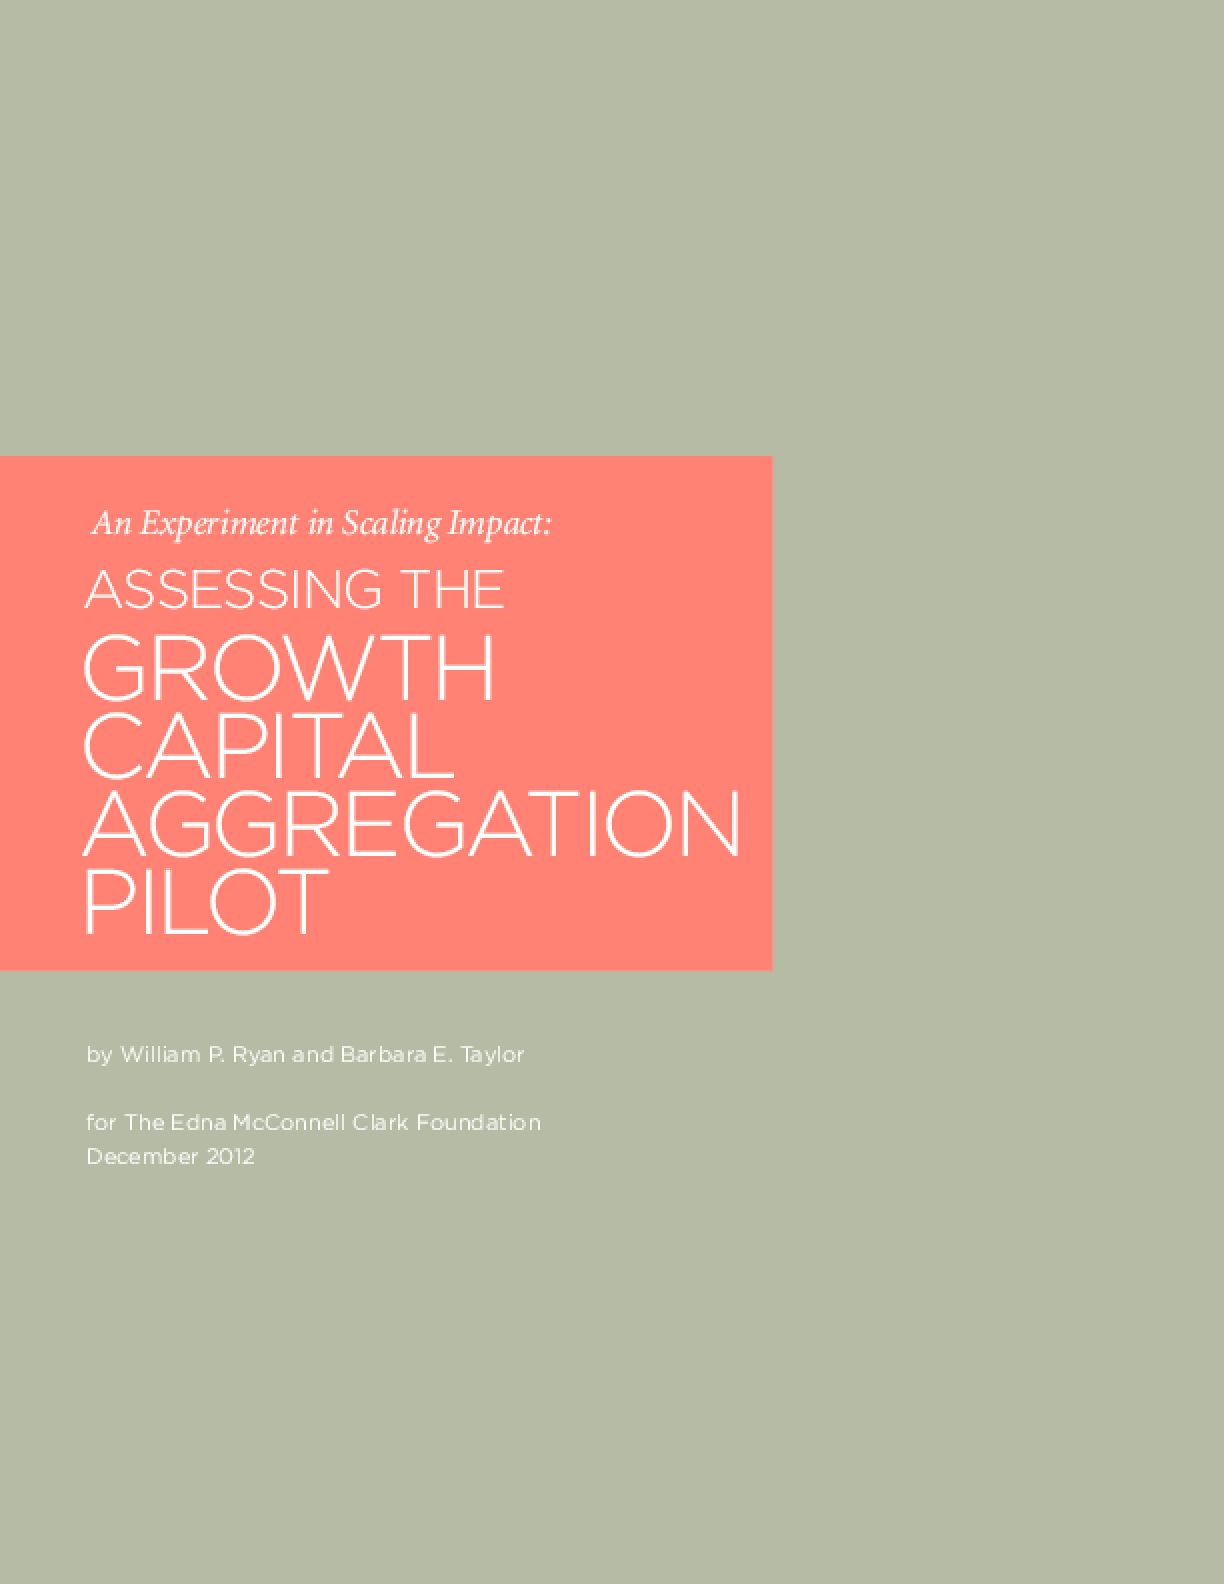 An Experiment in Scaling Impact: Assessing the Growth Capital Aggregation Pilot